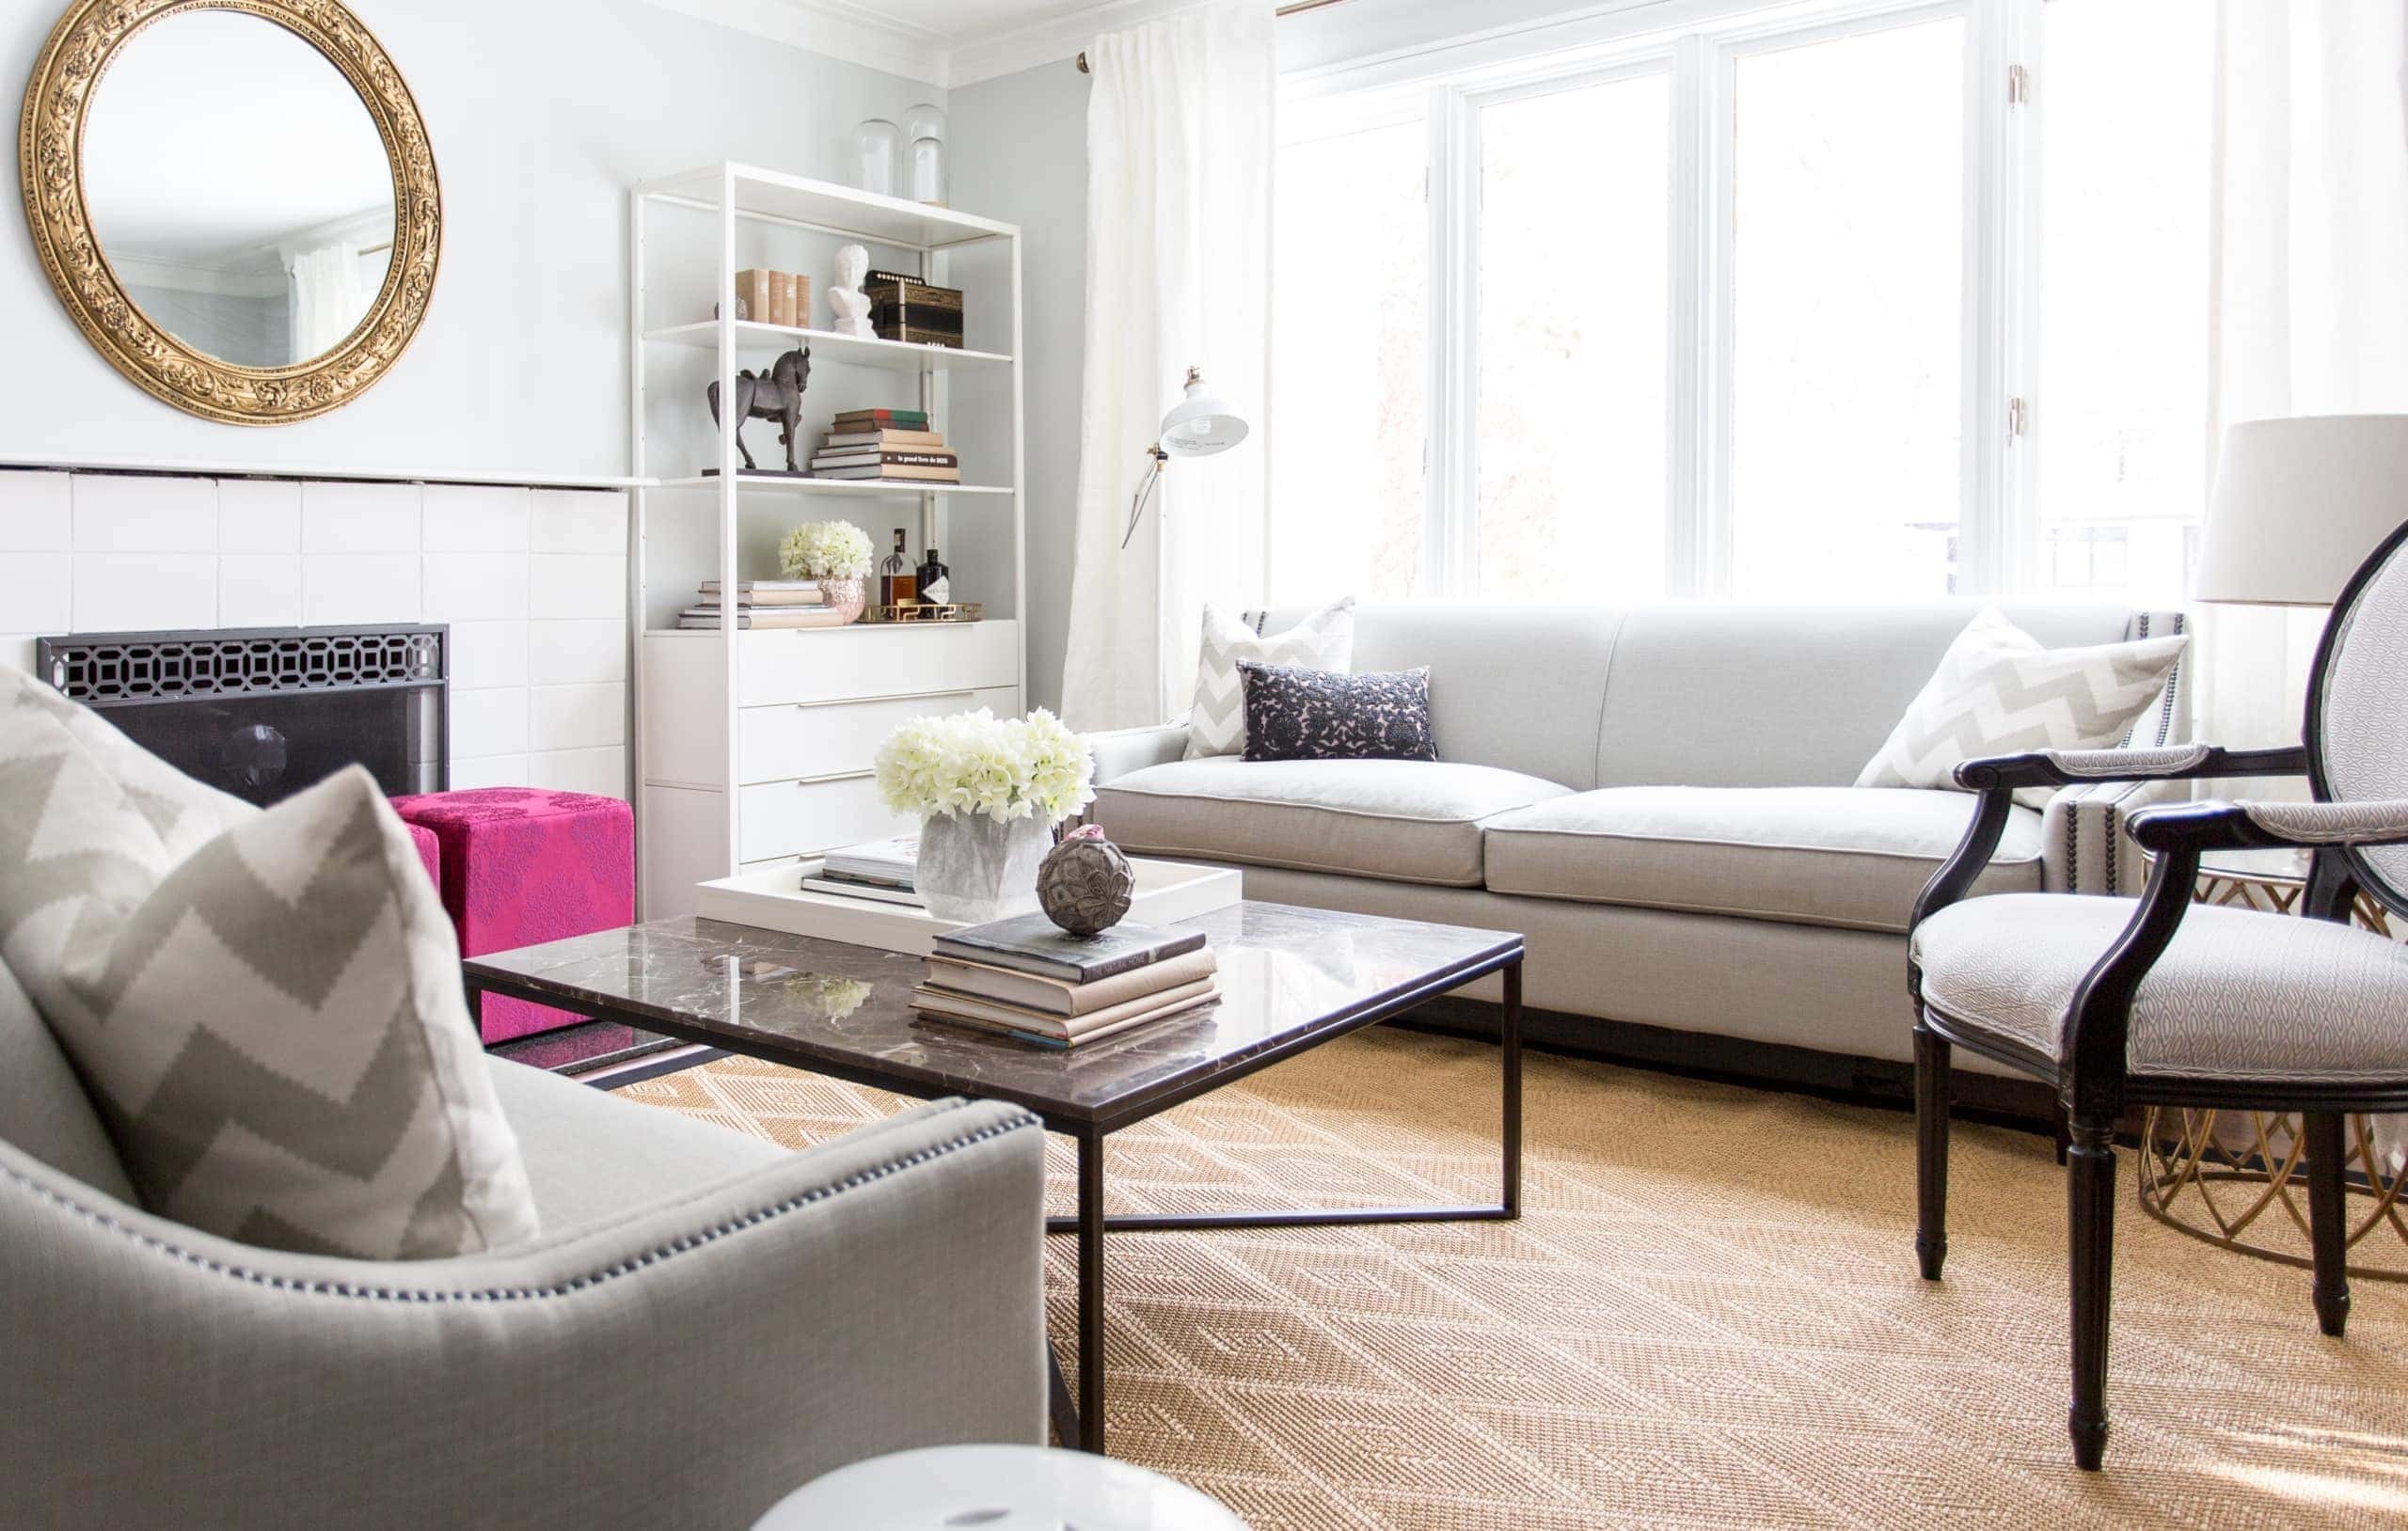 Large open living room with a focus on the glass coffee table